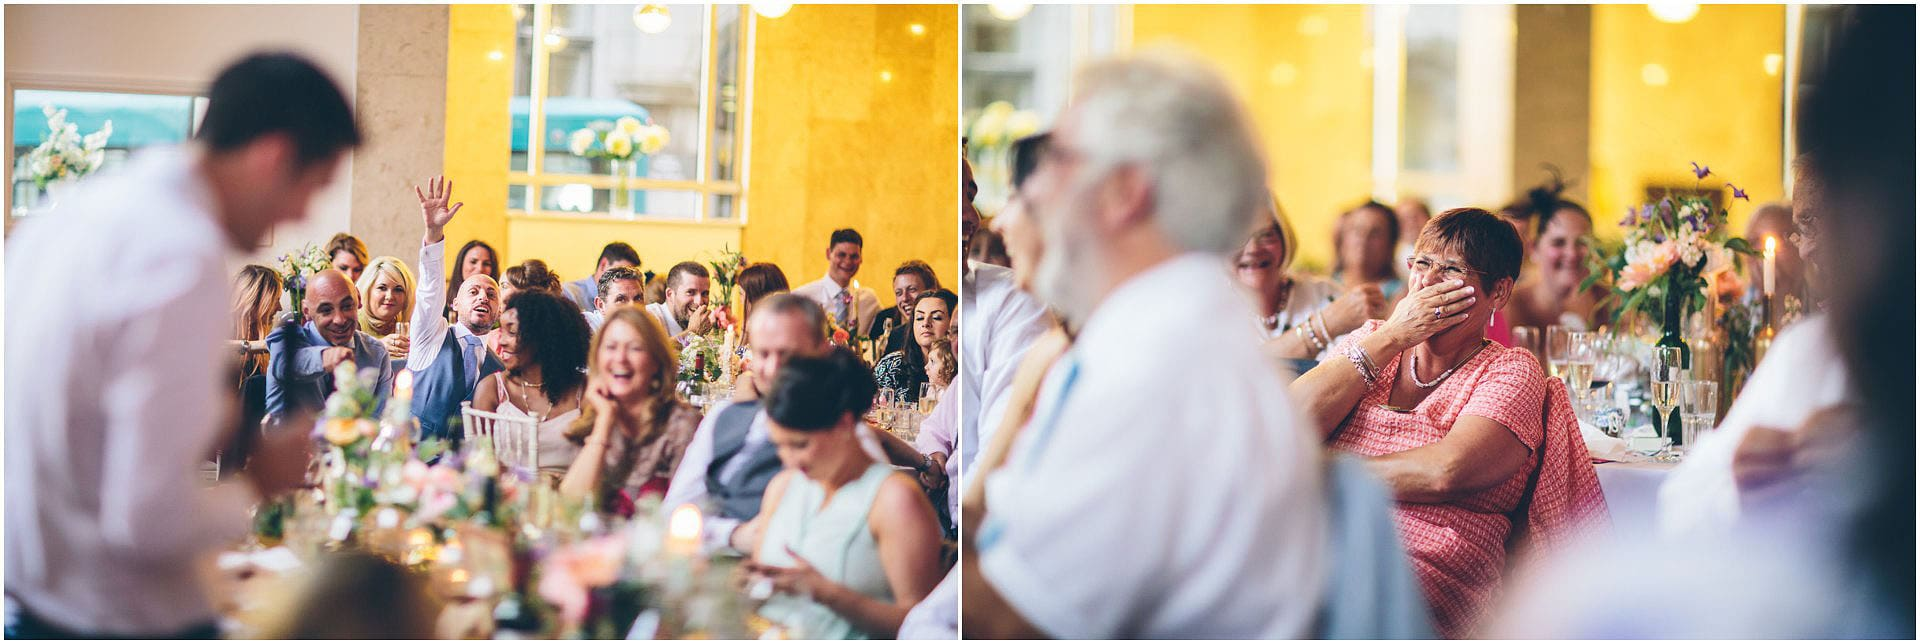 Oh_Me_Oh_My_Wedding_Photography_0109